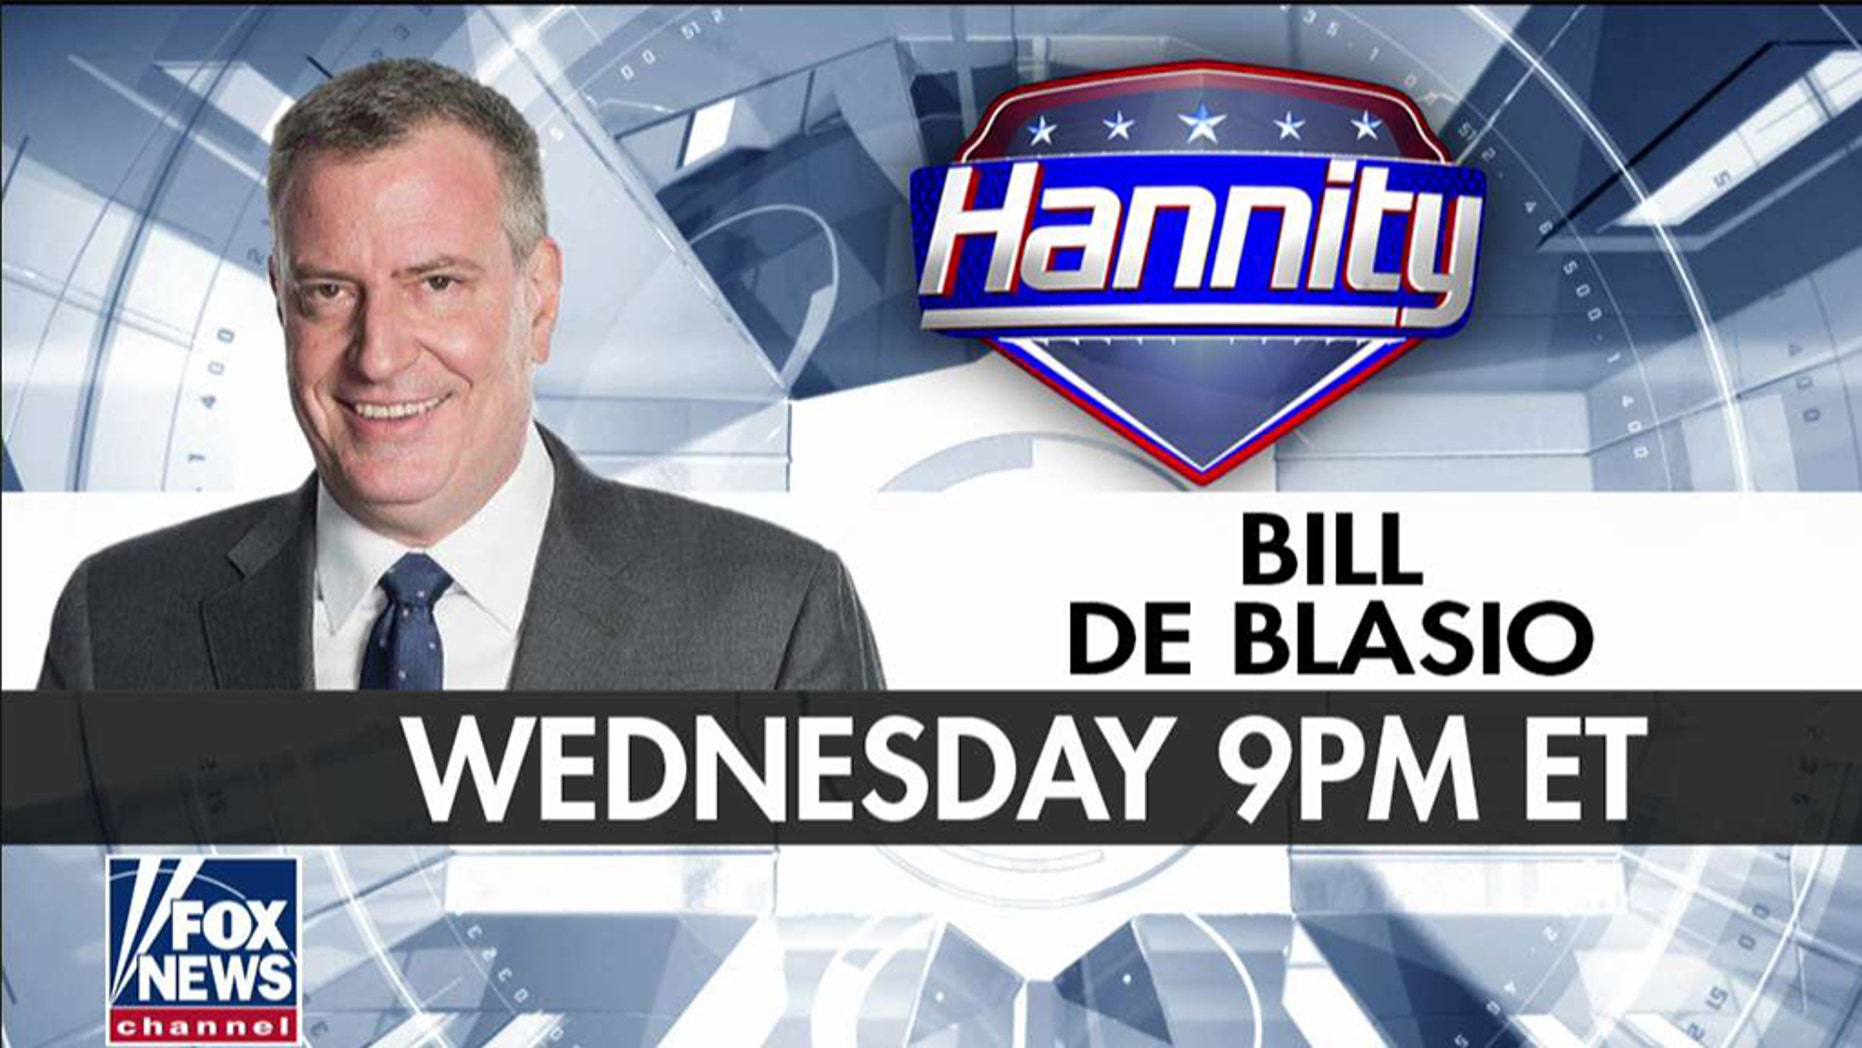 Westlake Legal Group Bill-de-Blasio-Promo Today on Fox News, Aug. 7, 2019 fox-news/entertainment/media fox-news/entertainment fox news fnc/media fnc article 934f60a9-a3c1-5903-a444-31e2d7f35c5a